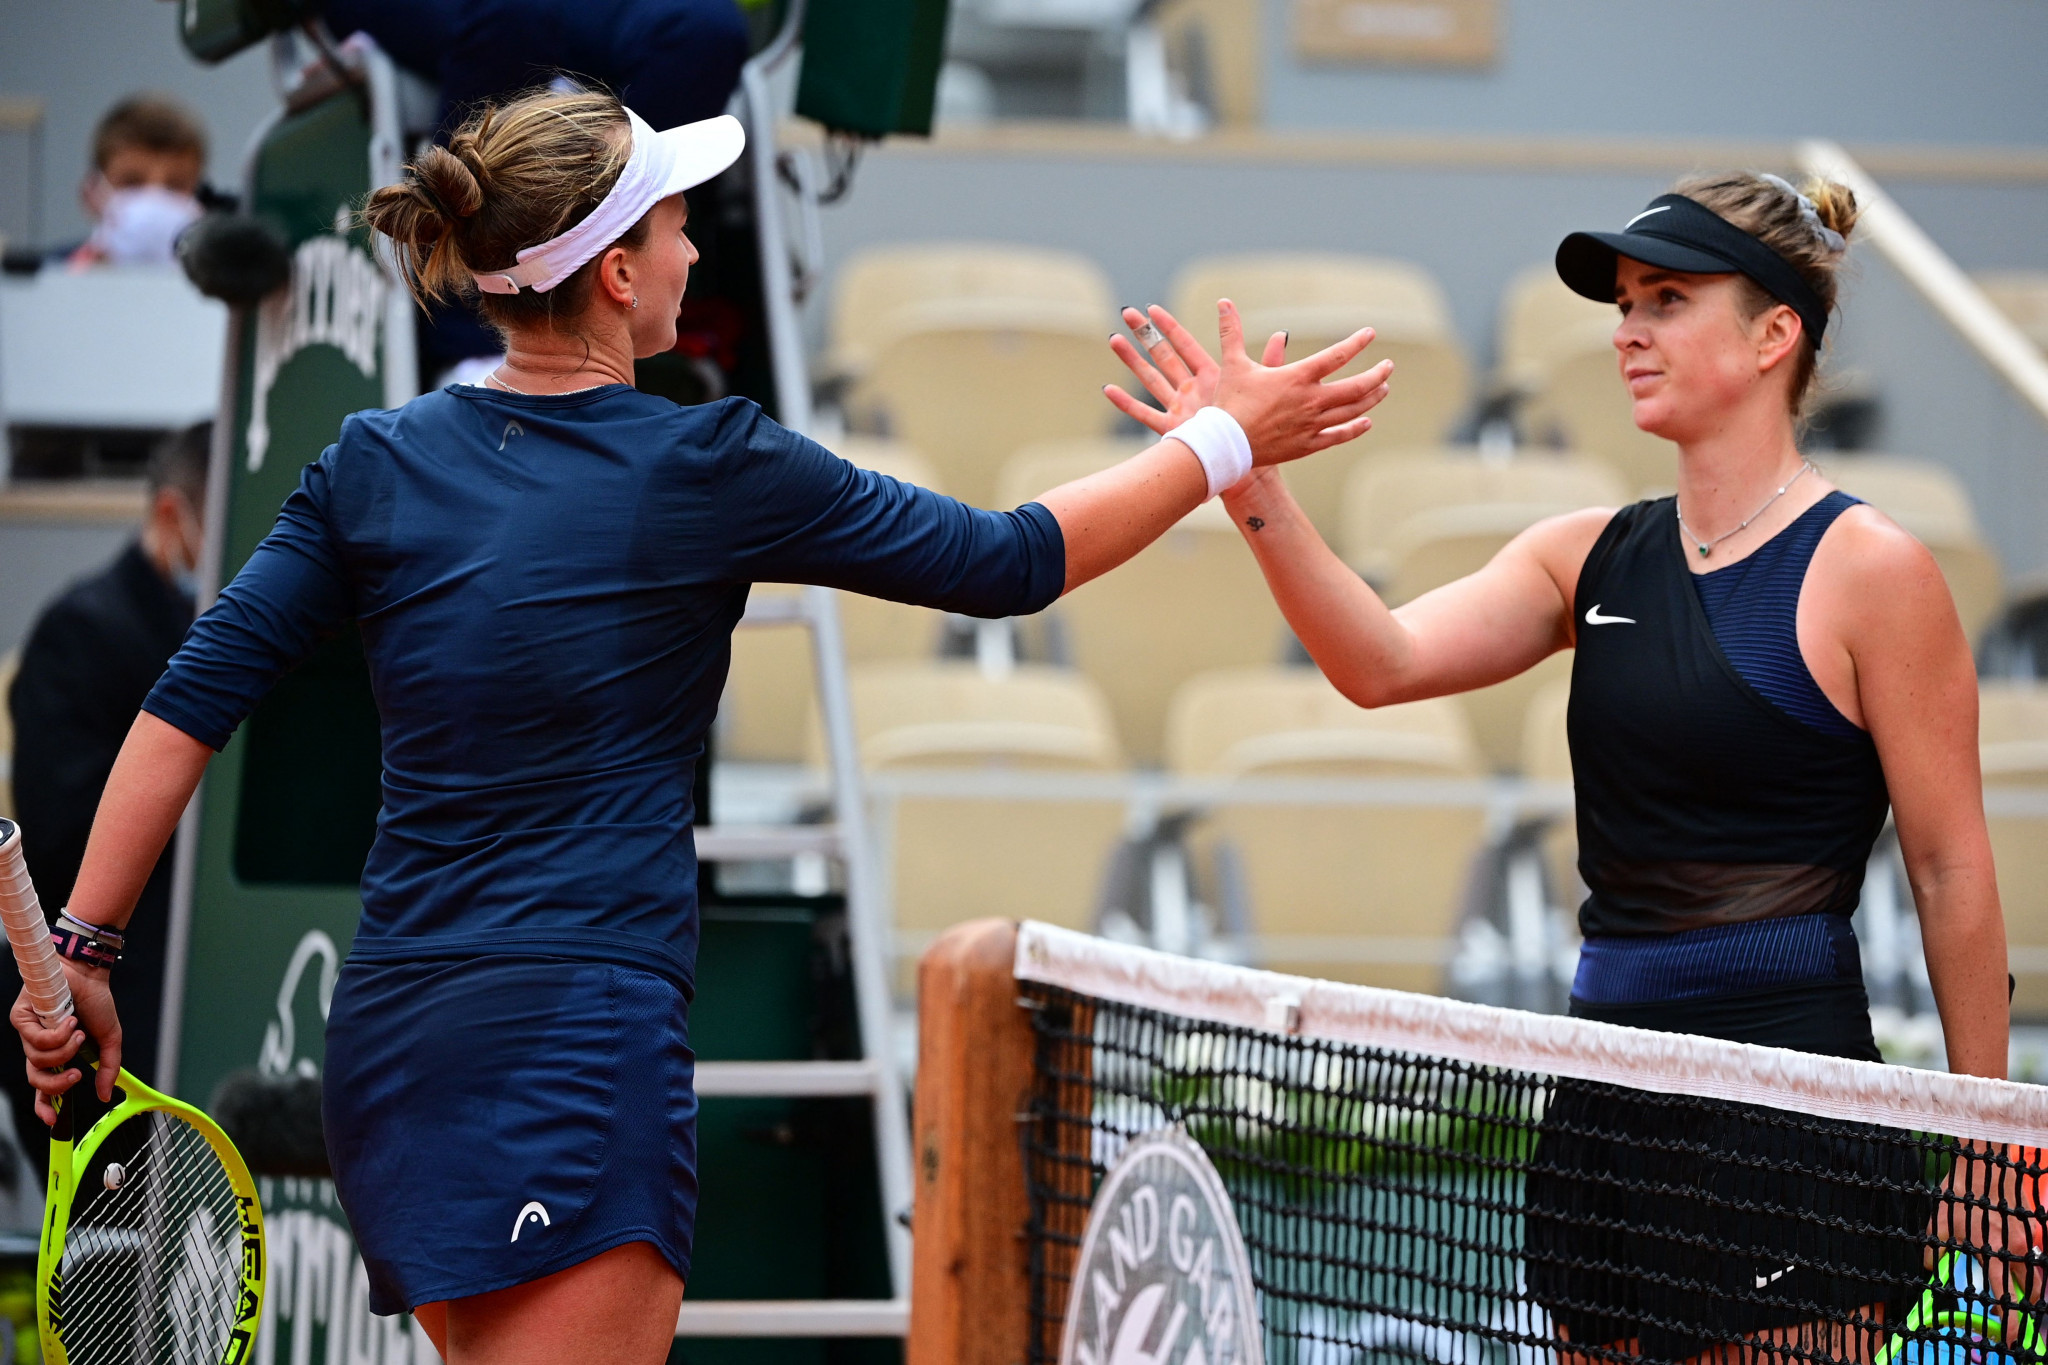 Elina Svitolina congratulates Barbora Krejčíková at the net after losing in the third round ©Getty Images